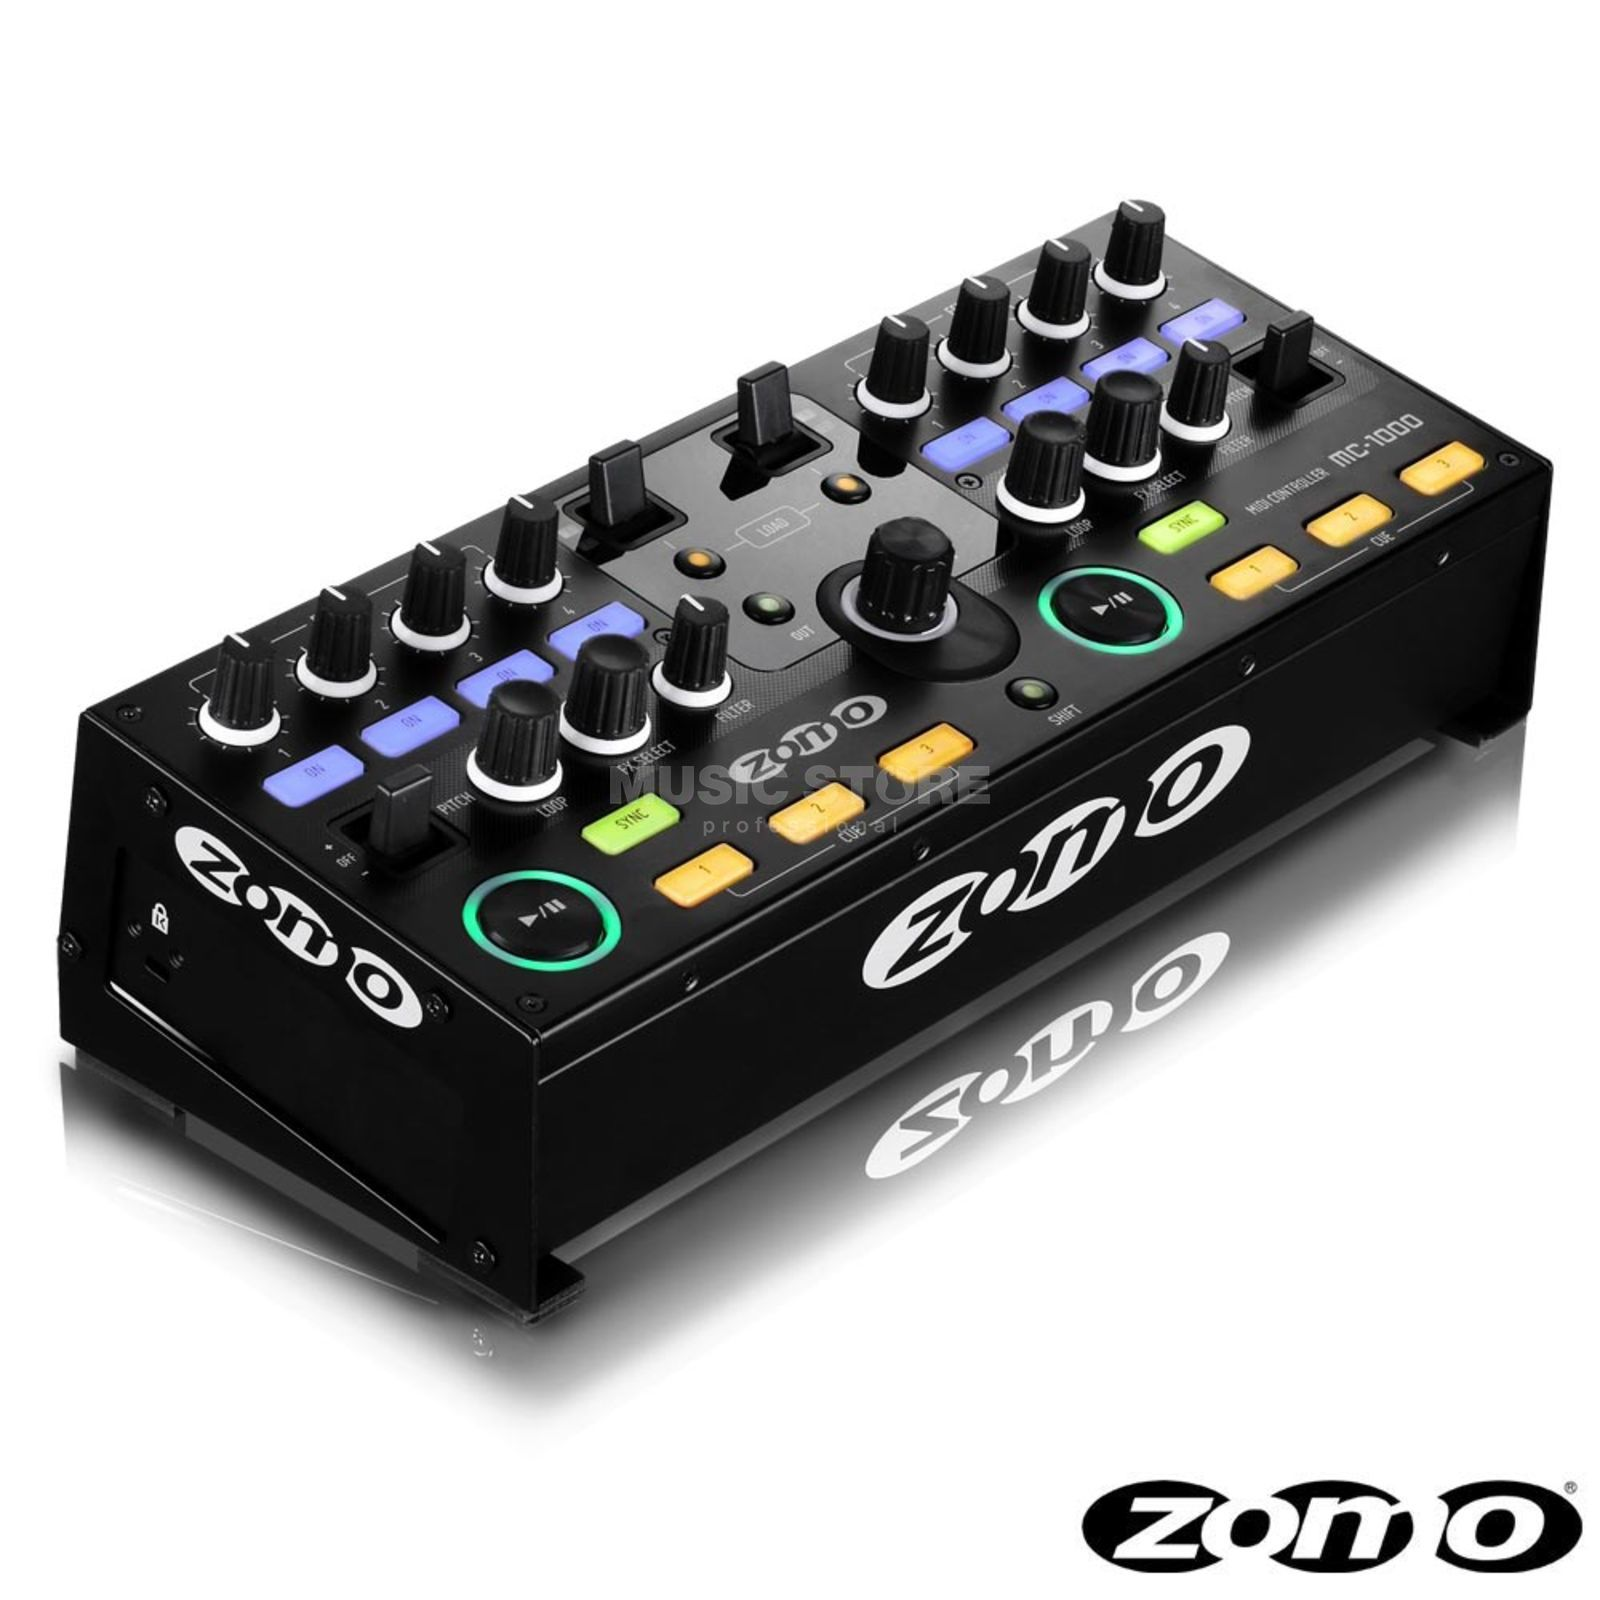 Zomo Pro Mount Kit PMK-2 for Midi-Controller MC-1001 Product Image